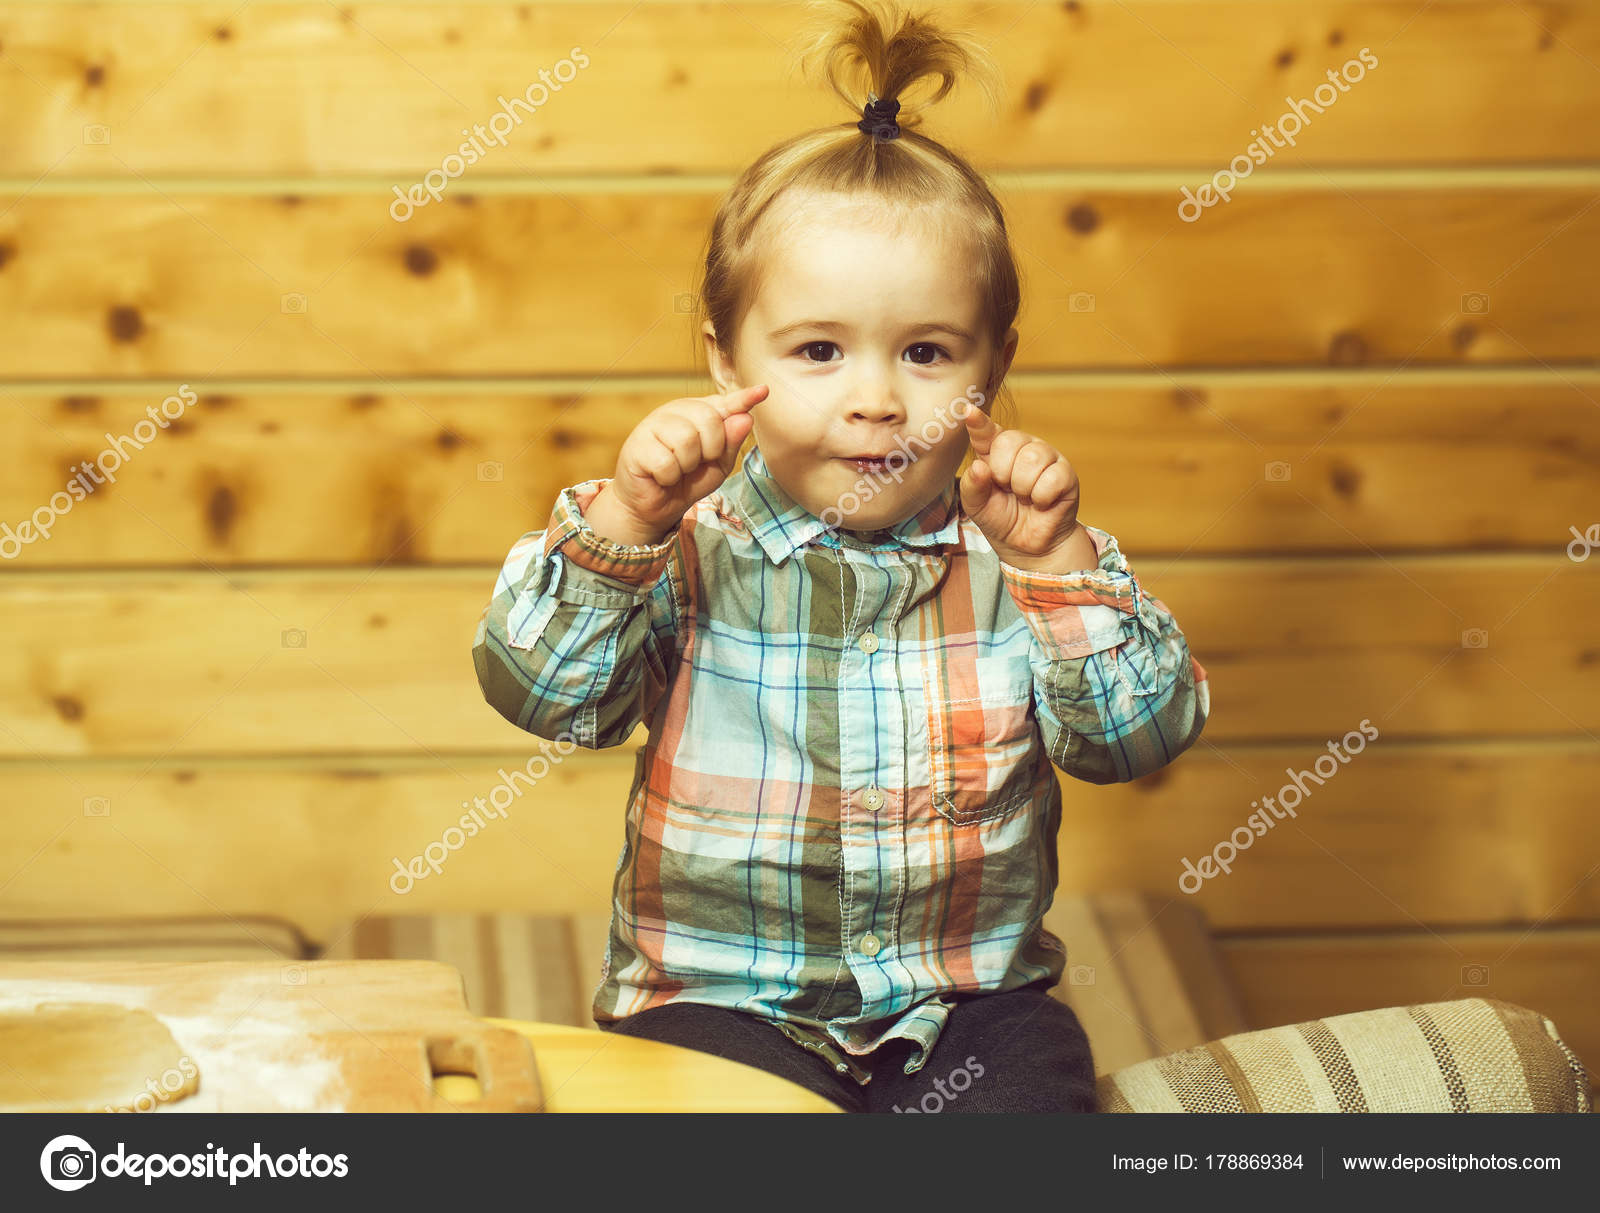 9c977d7ae Adorable Small Child Chef Cute Baby Boy Smiling Face Fashionable — Stock  Photo